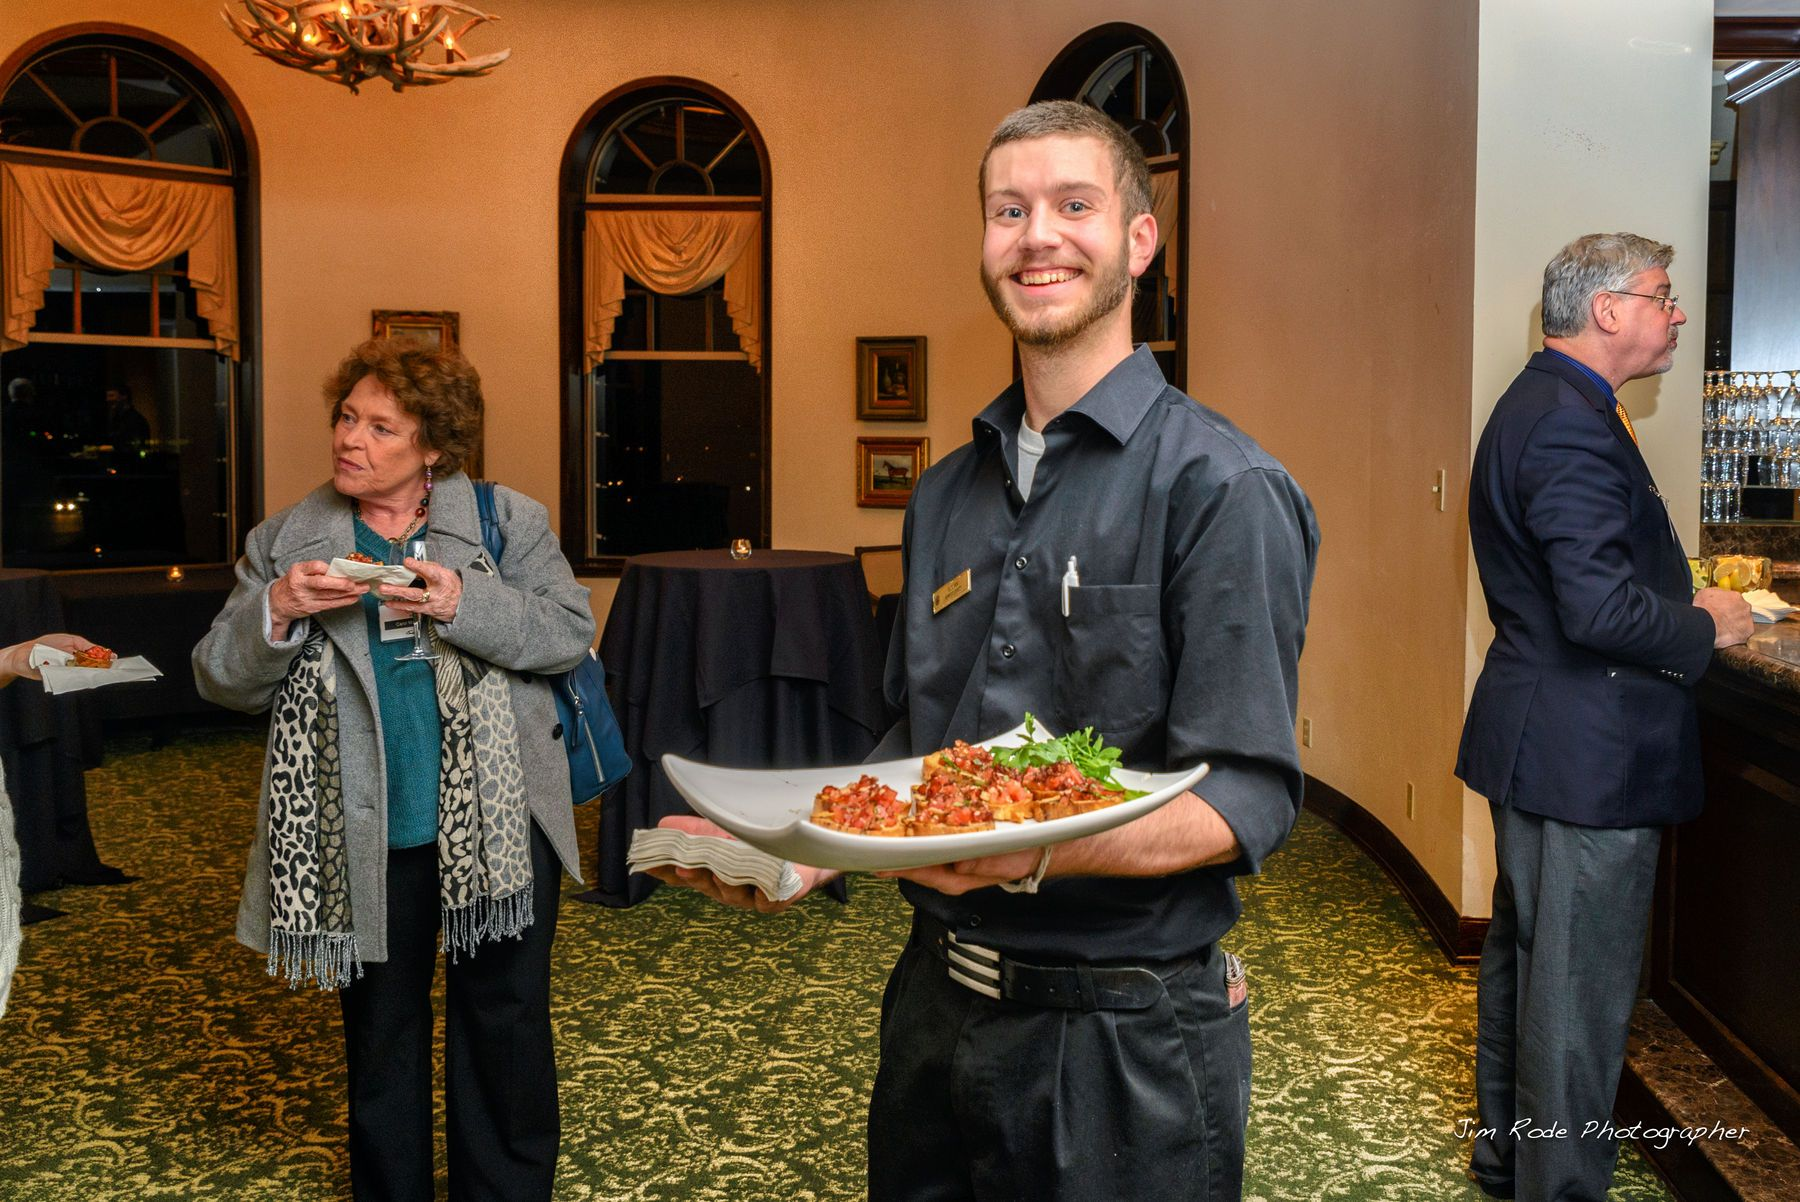 Butler Passed Brushetta at the Association of Wedding Professionals dinner meeting at StoneBridge Ranch Country Club.